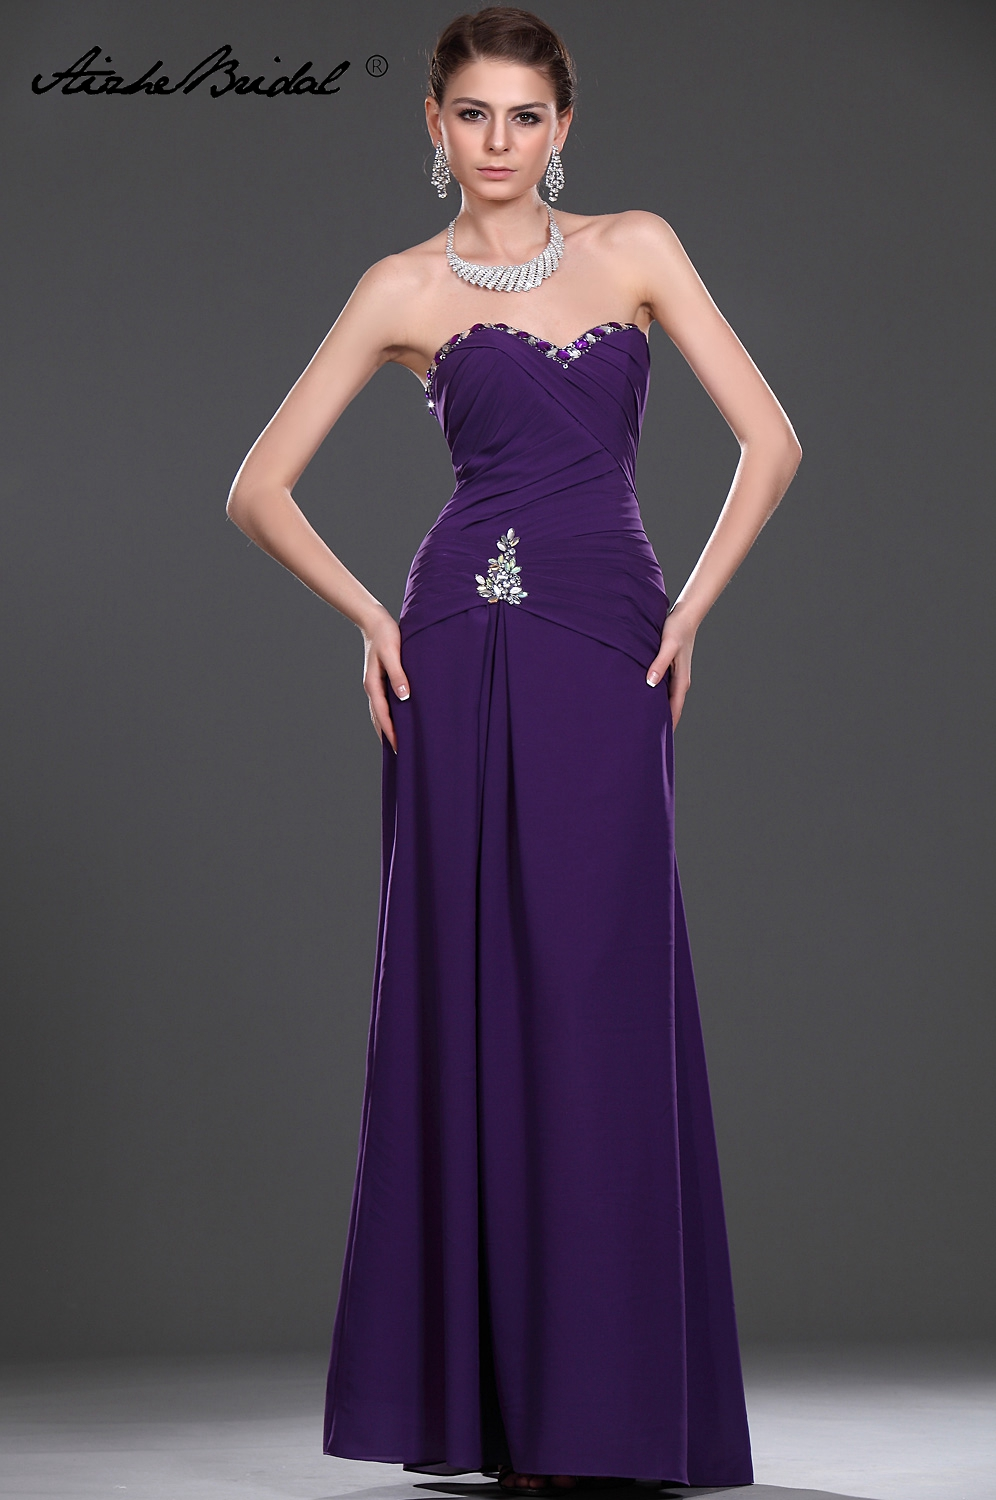 Wedding Party Dress Long Mother Of The Groom Dresses Gorgeous A Line Sleeveless Purple Chiffon Mother Of The Bride Dress